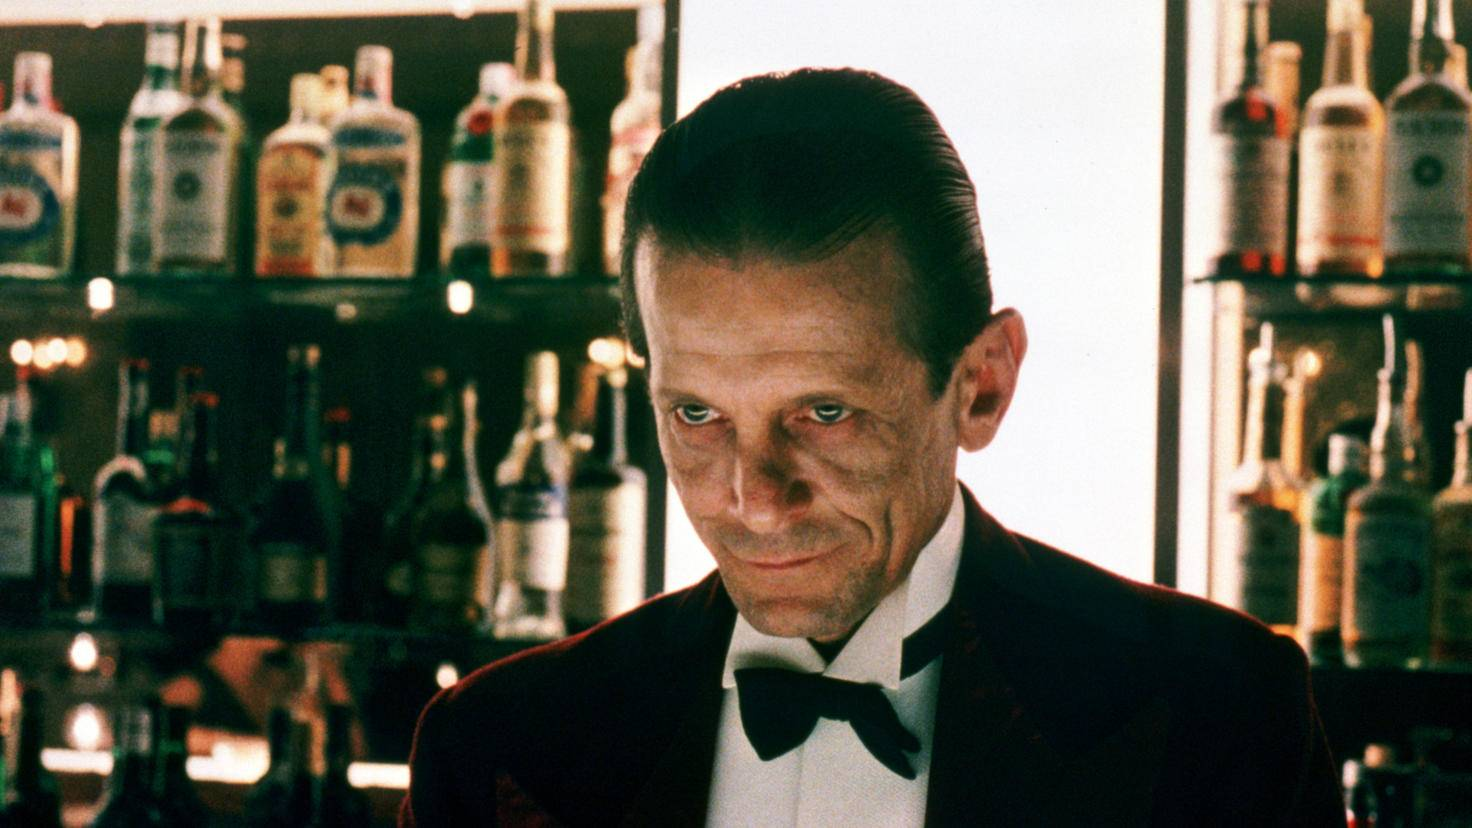 The-Shining-Barkeeper